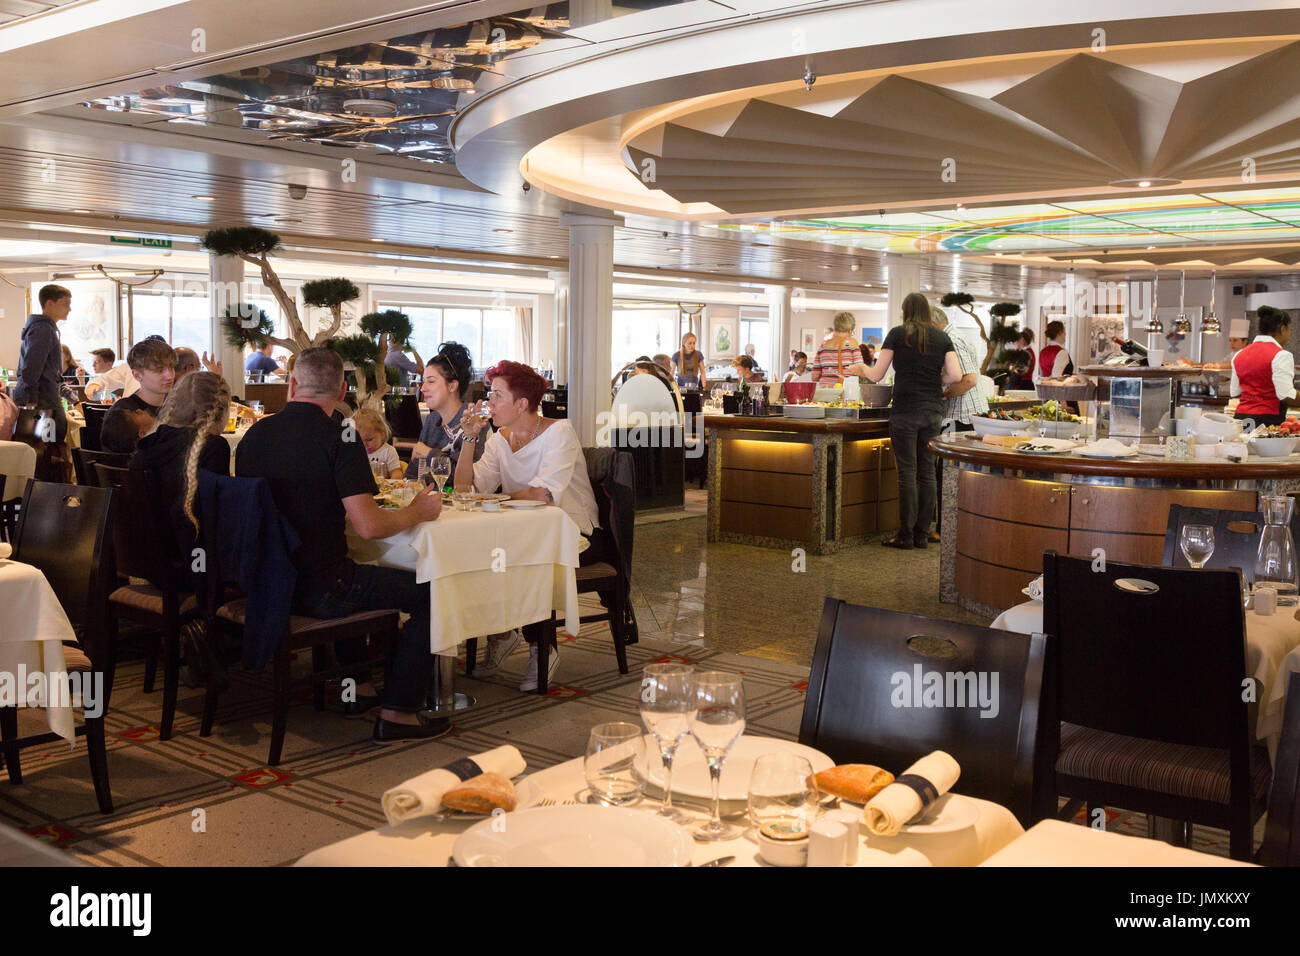 Brittany Ferries; - Passengers dining in the Les Abers restaurant aboard the Brittany Ferry 'Bretagne', whilst crossing the Channel - Stock Image